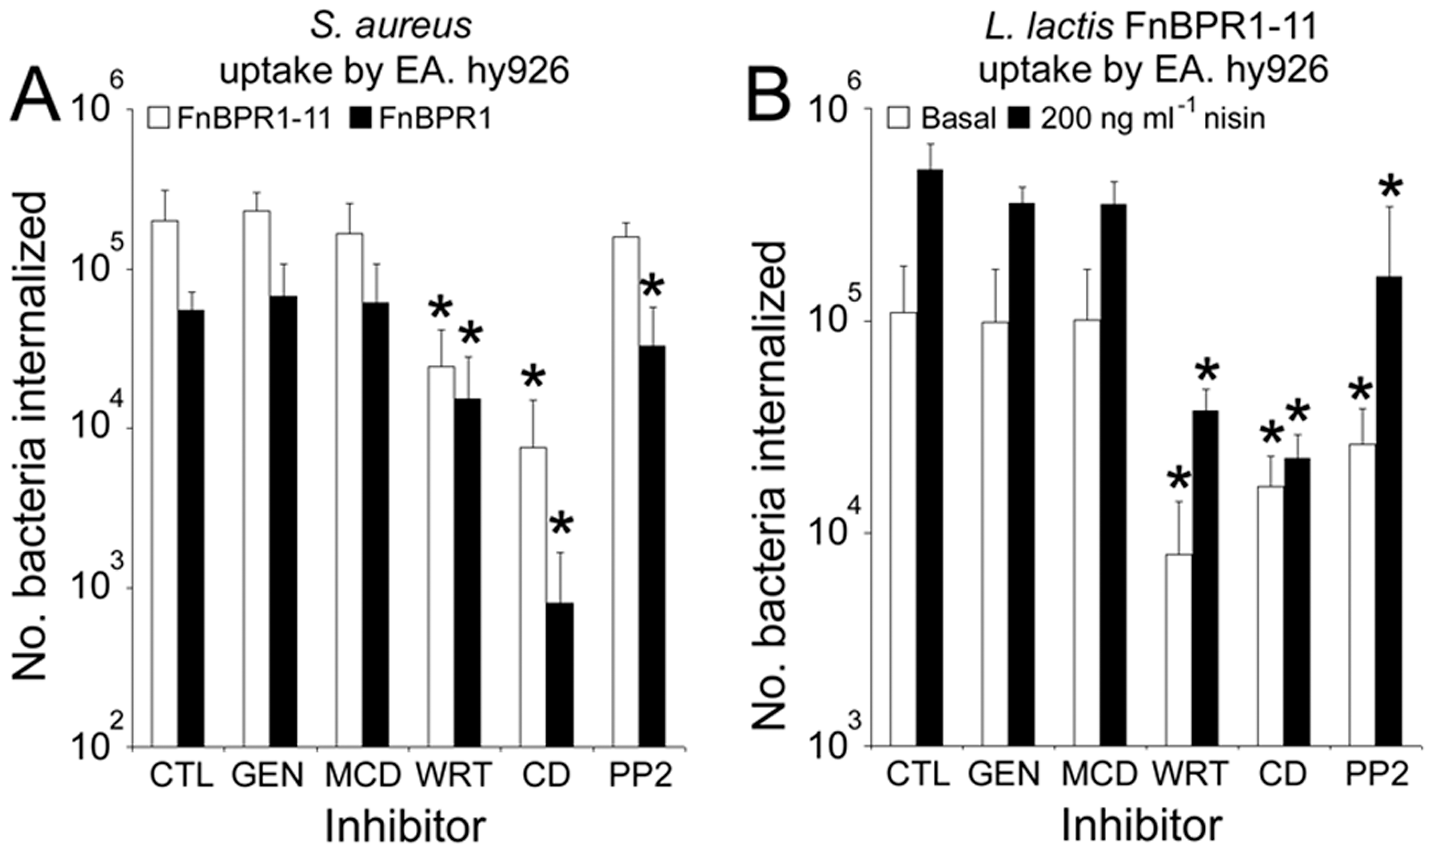 The mechanism of bacterial uptake is unaffected by FnBPA composition or expression level.